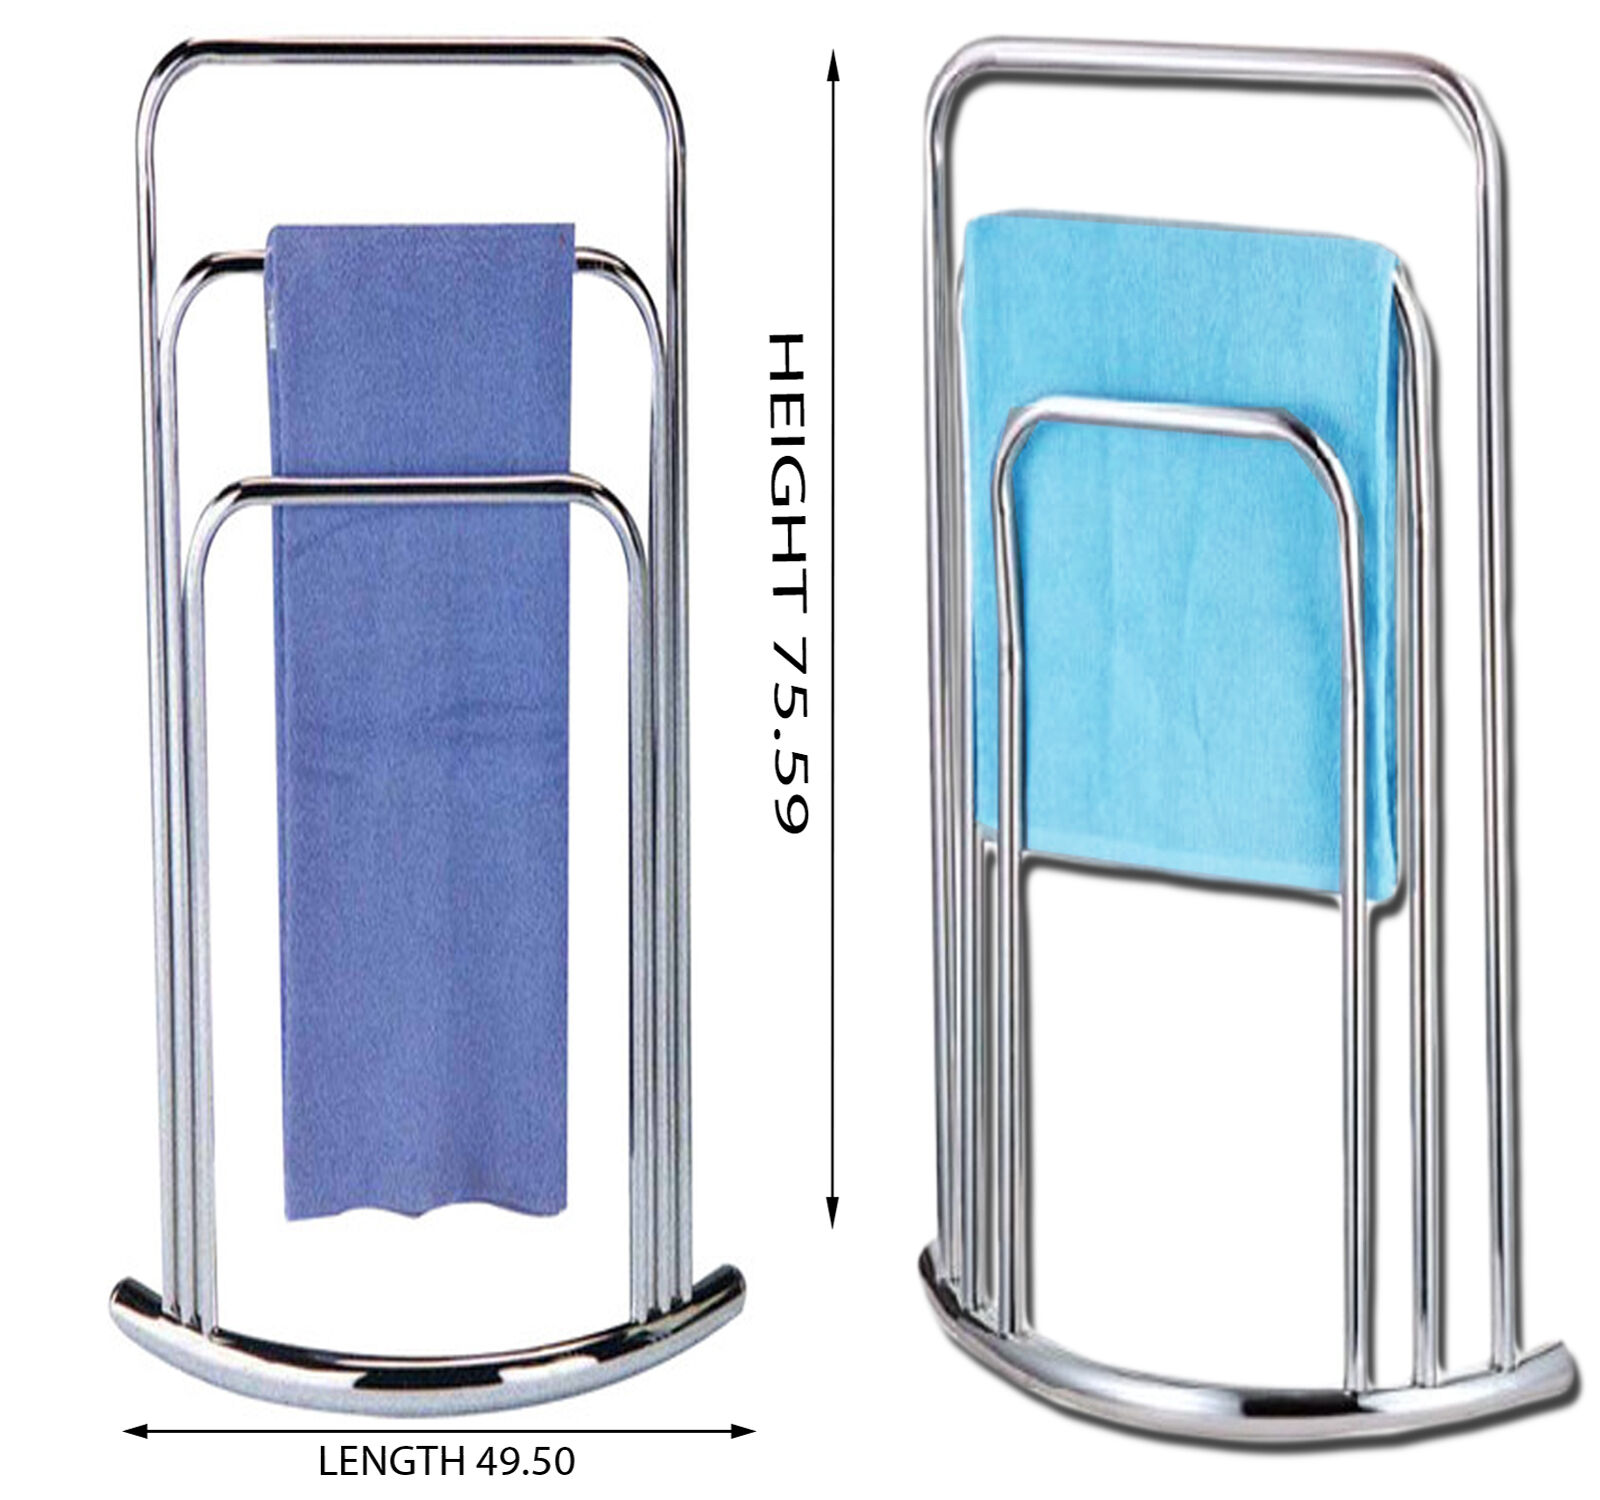 3 TIER TOWEL Holder Free Standing Chrome Bathroom 3 Rail Rack Stand ...